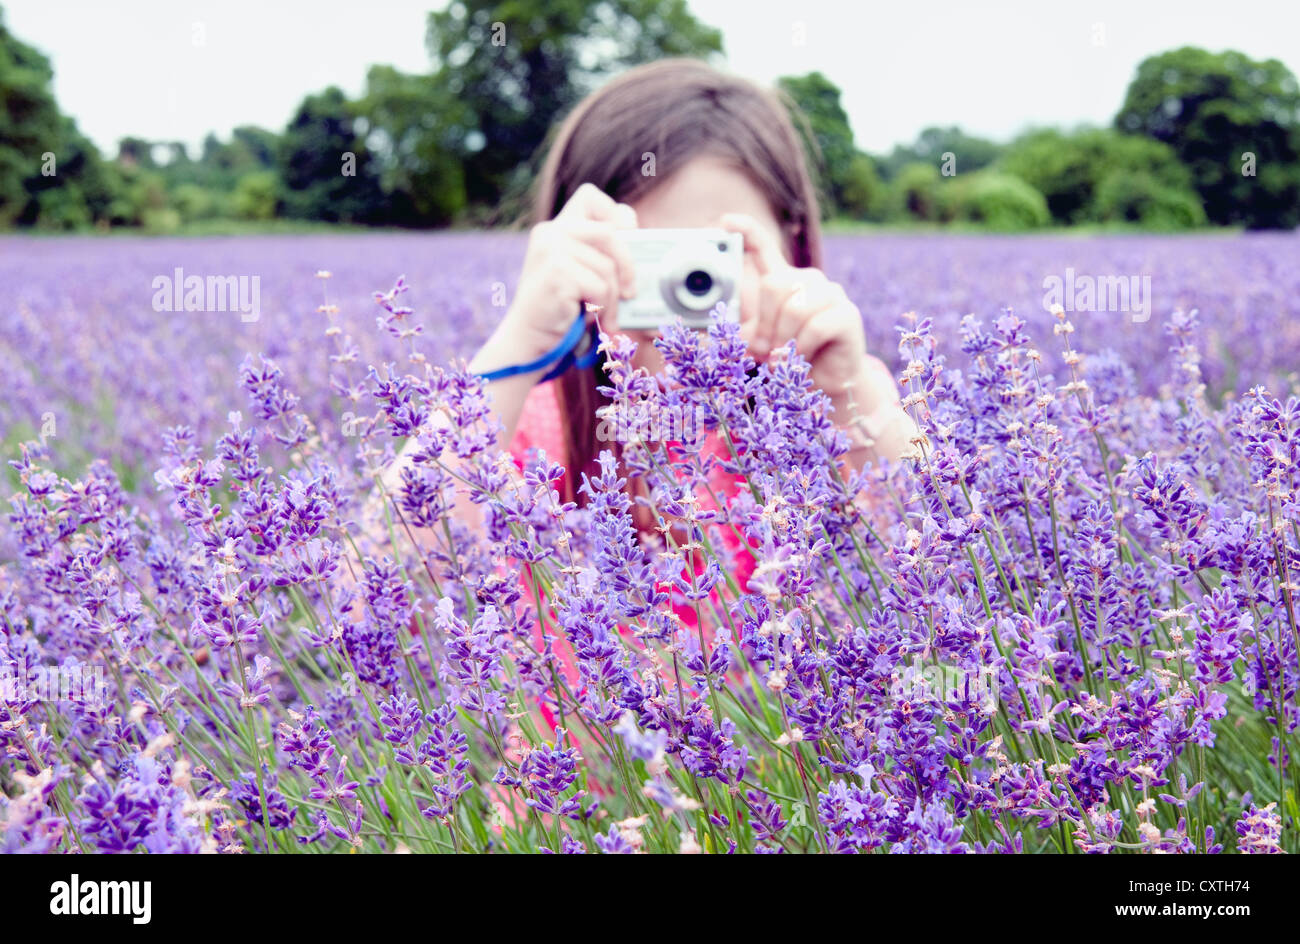 taking pictures of flowers stock photo royalty free image